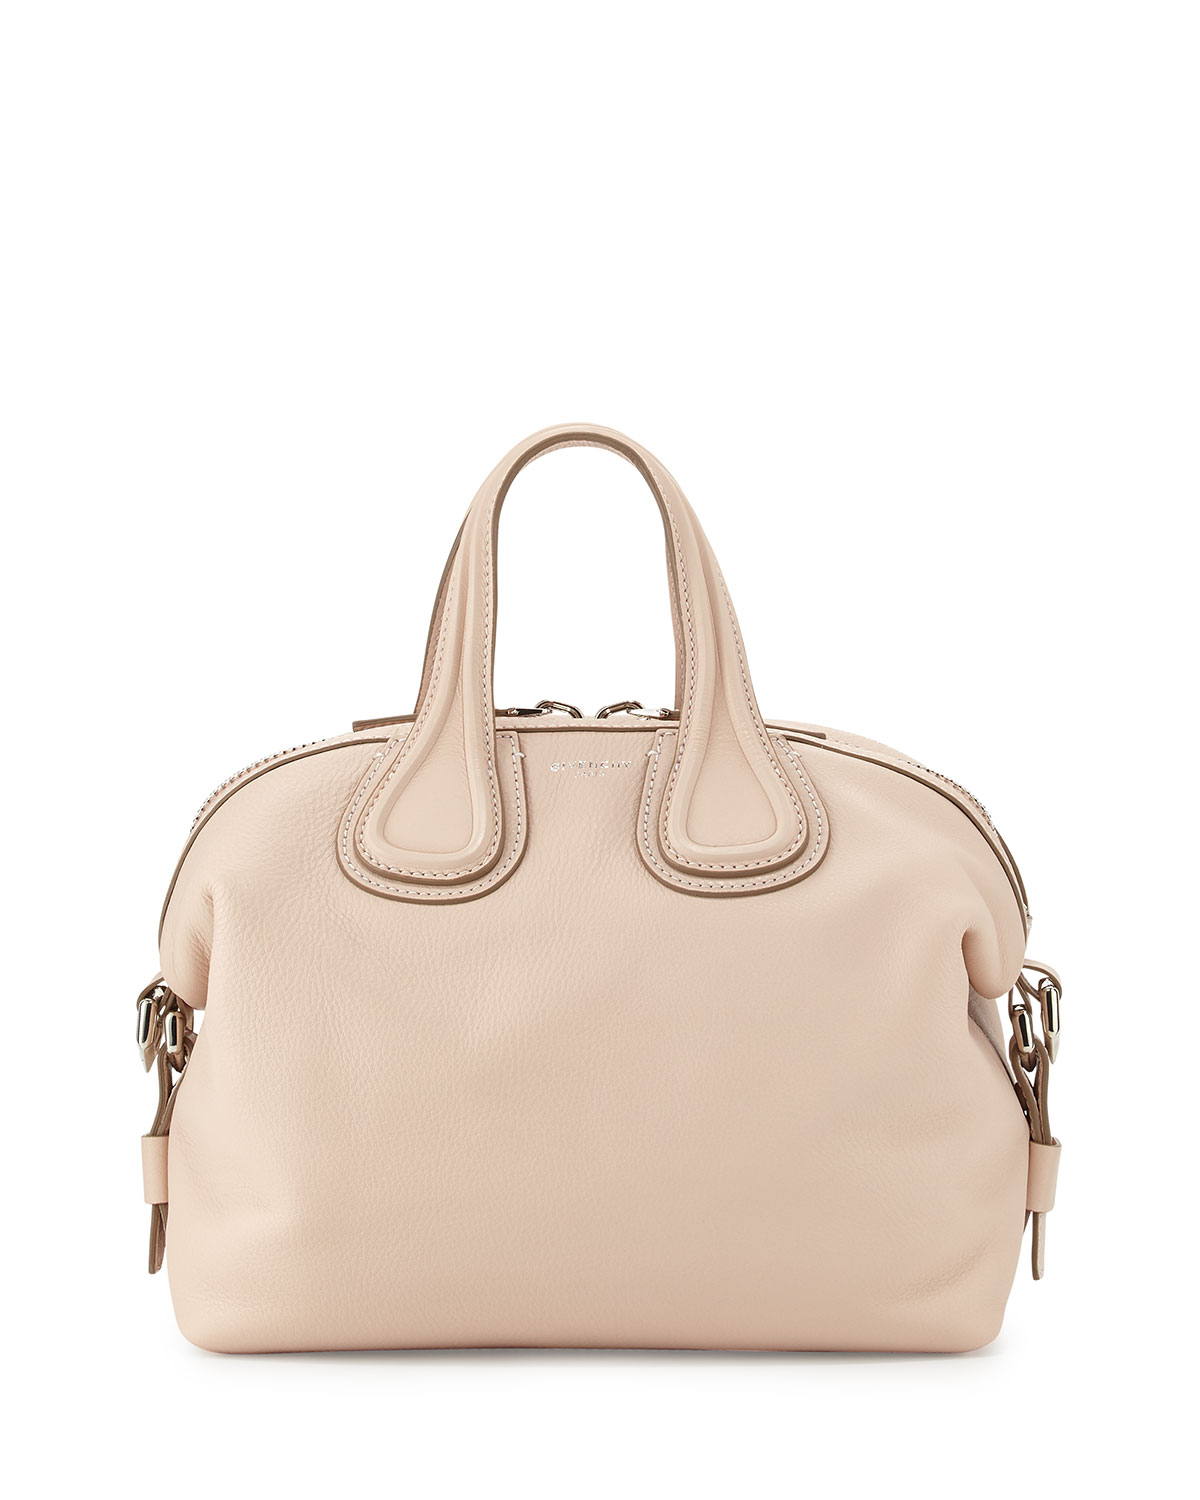 0535a61c96 Givenchy Nightingale Small Waxy Leather Satchel Bag